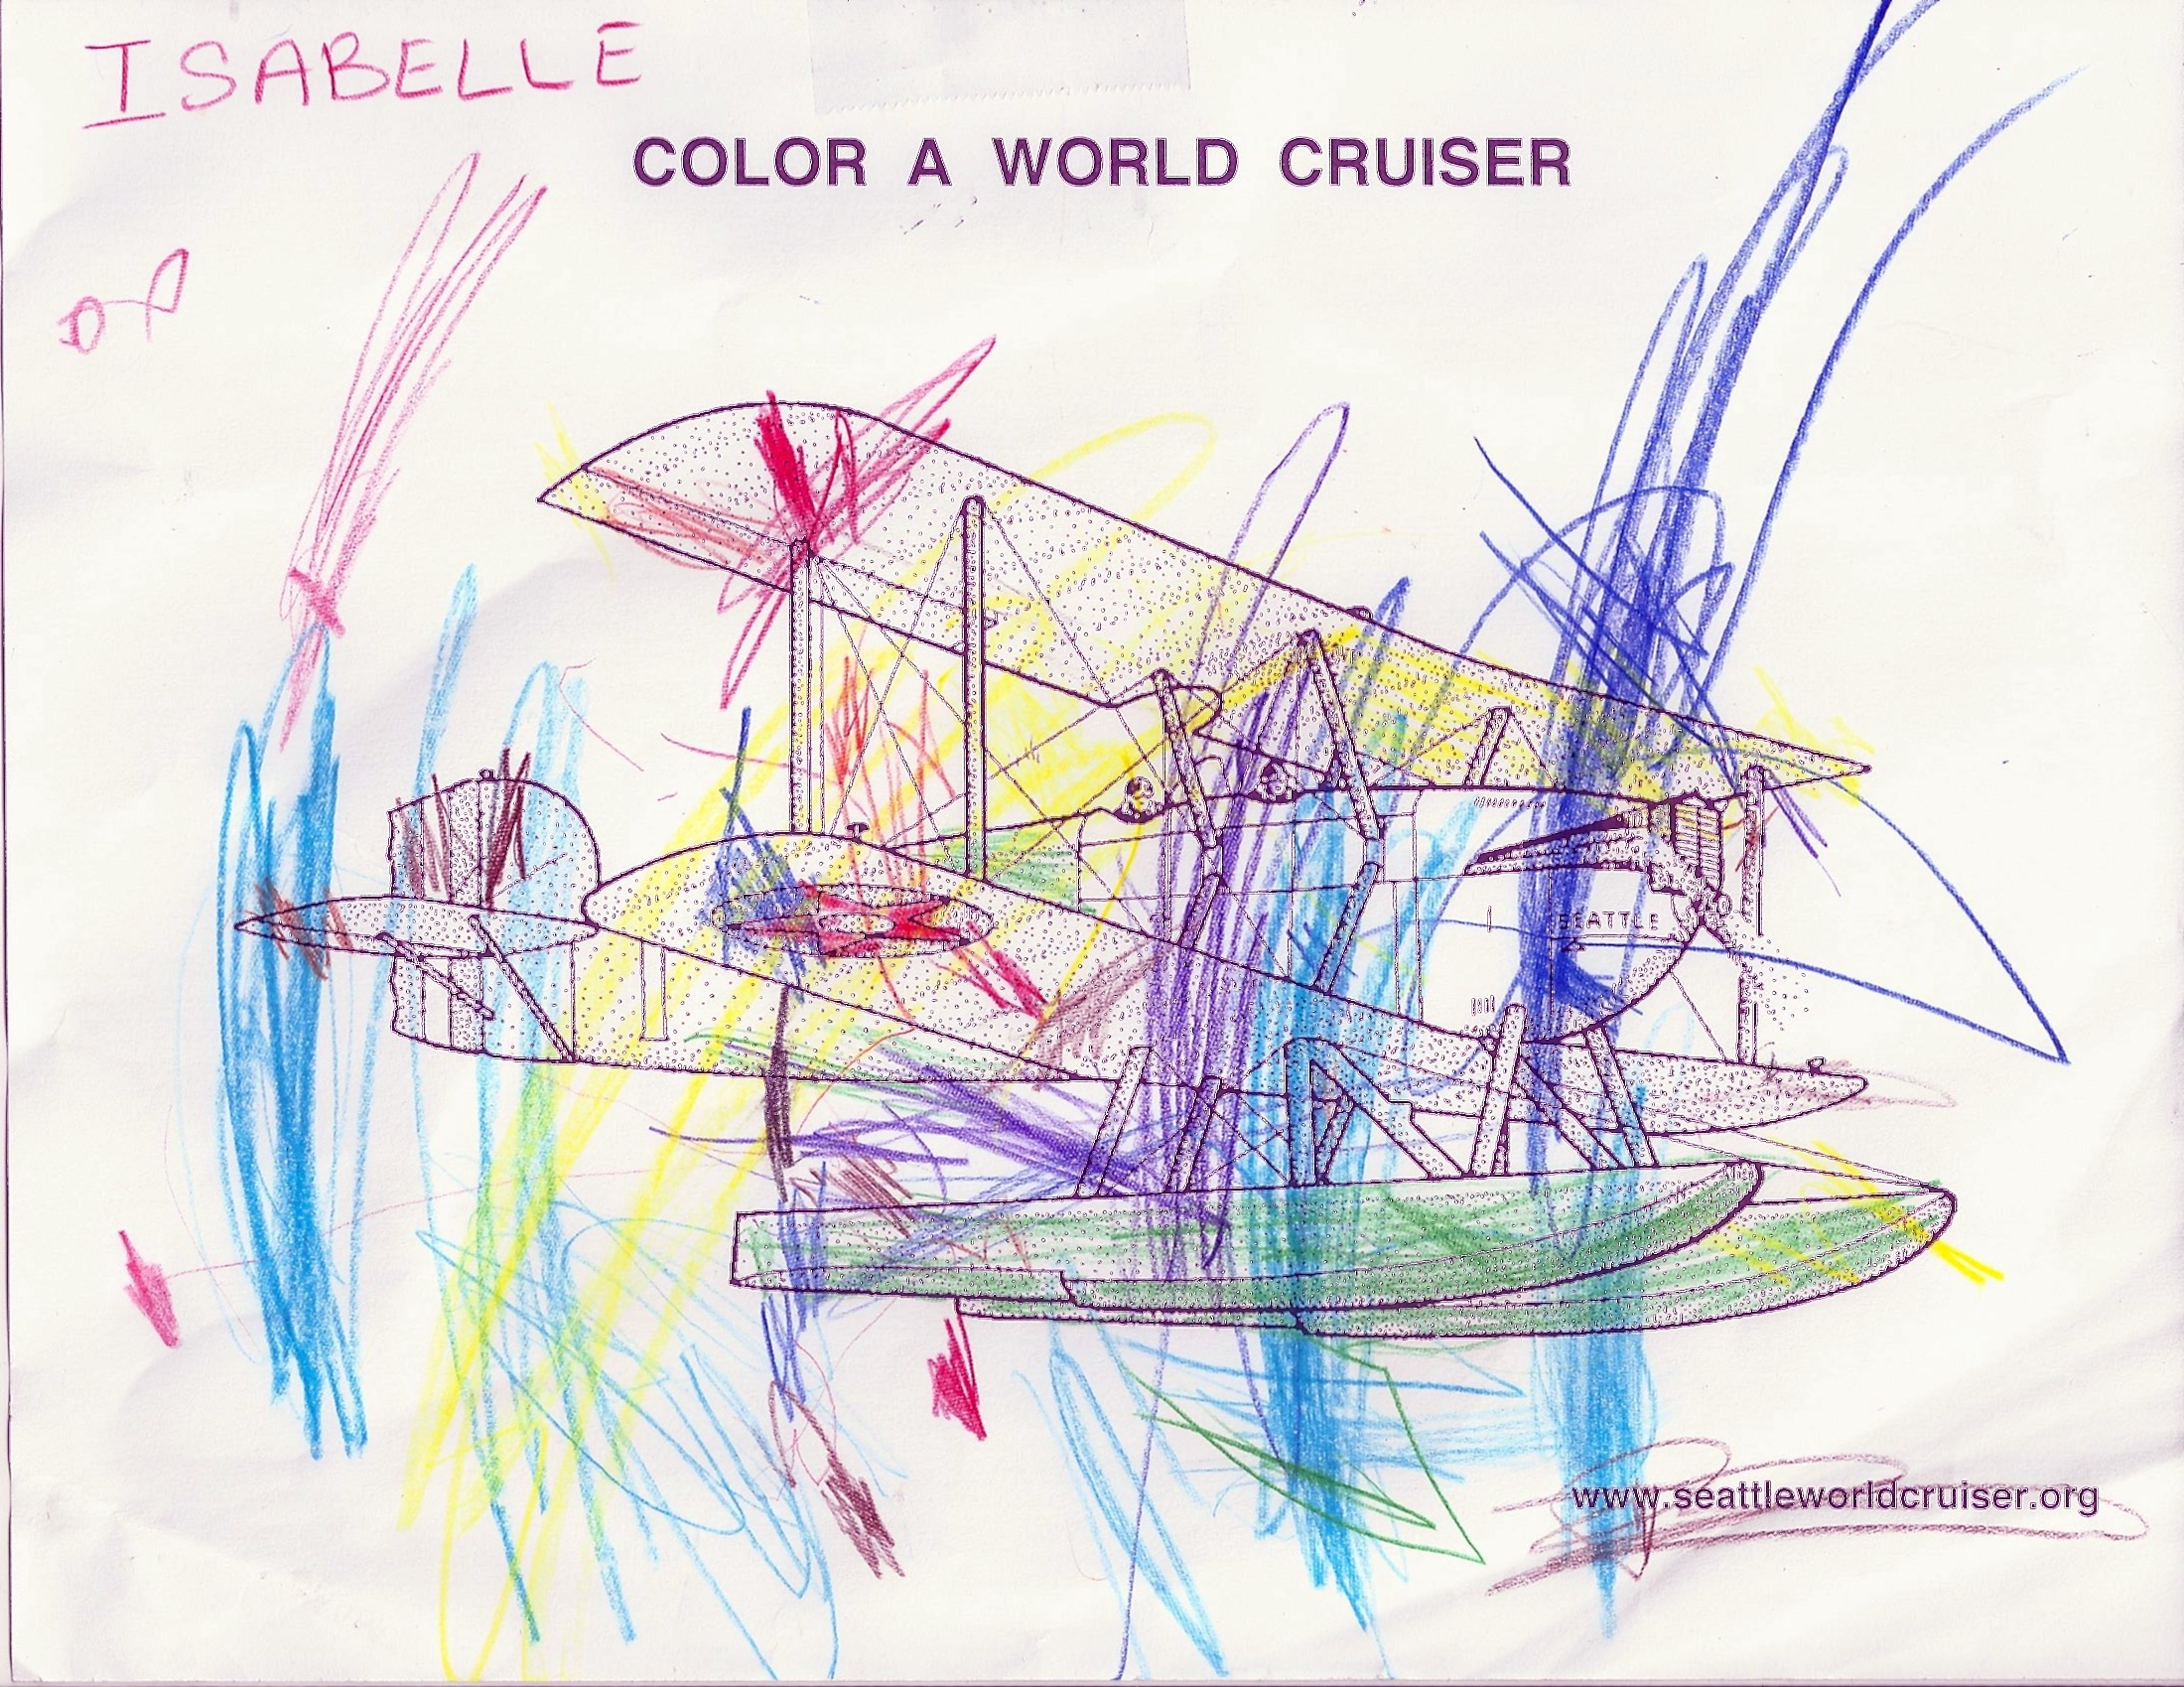 ColorCruiser_Isabelle.jpg